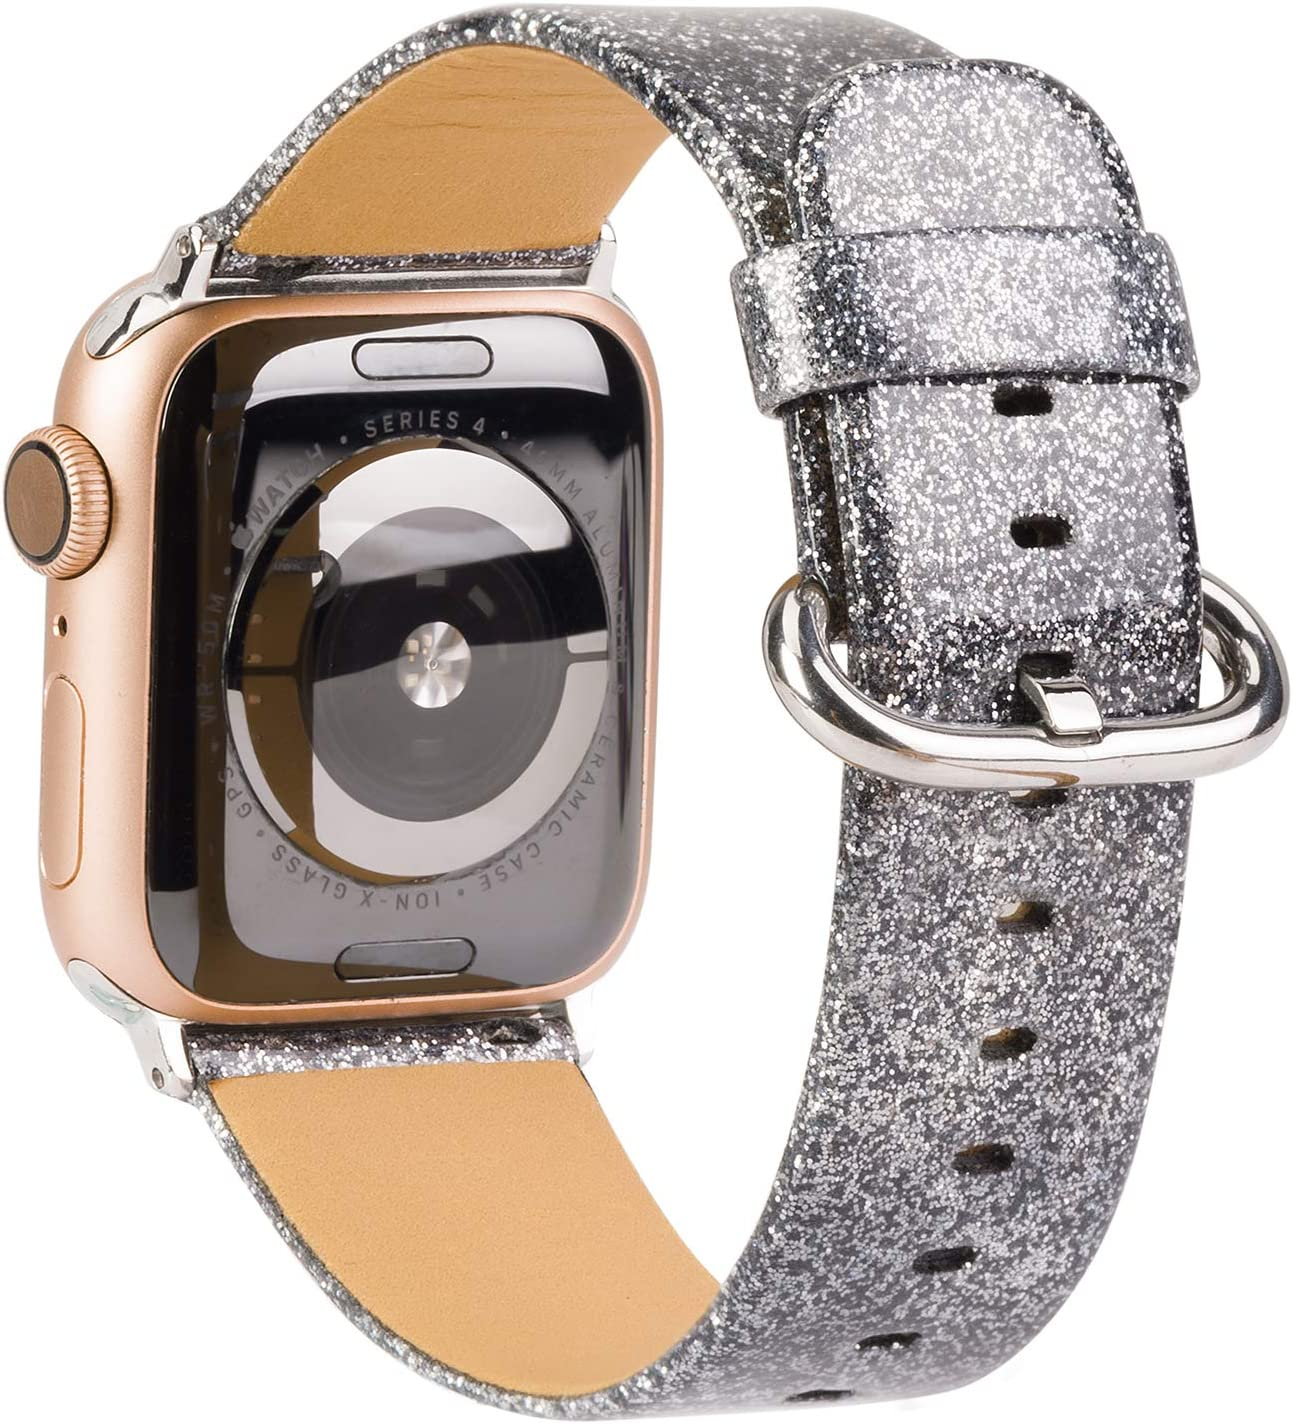 TOYOUTHS Glitter Leather Bands Compatible with Apple Watch Bands Rose Gold 38mm 40mm Womens Bling Diamond Dressy Genuine Shiny Strap for iWatch Series 5 4 3 2 1